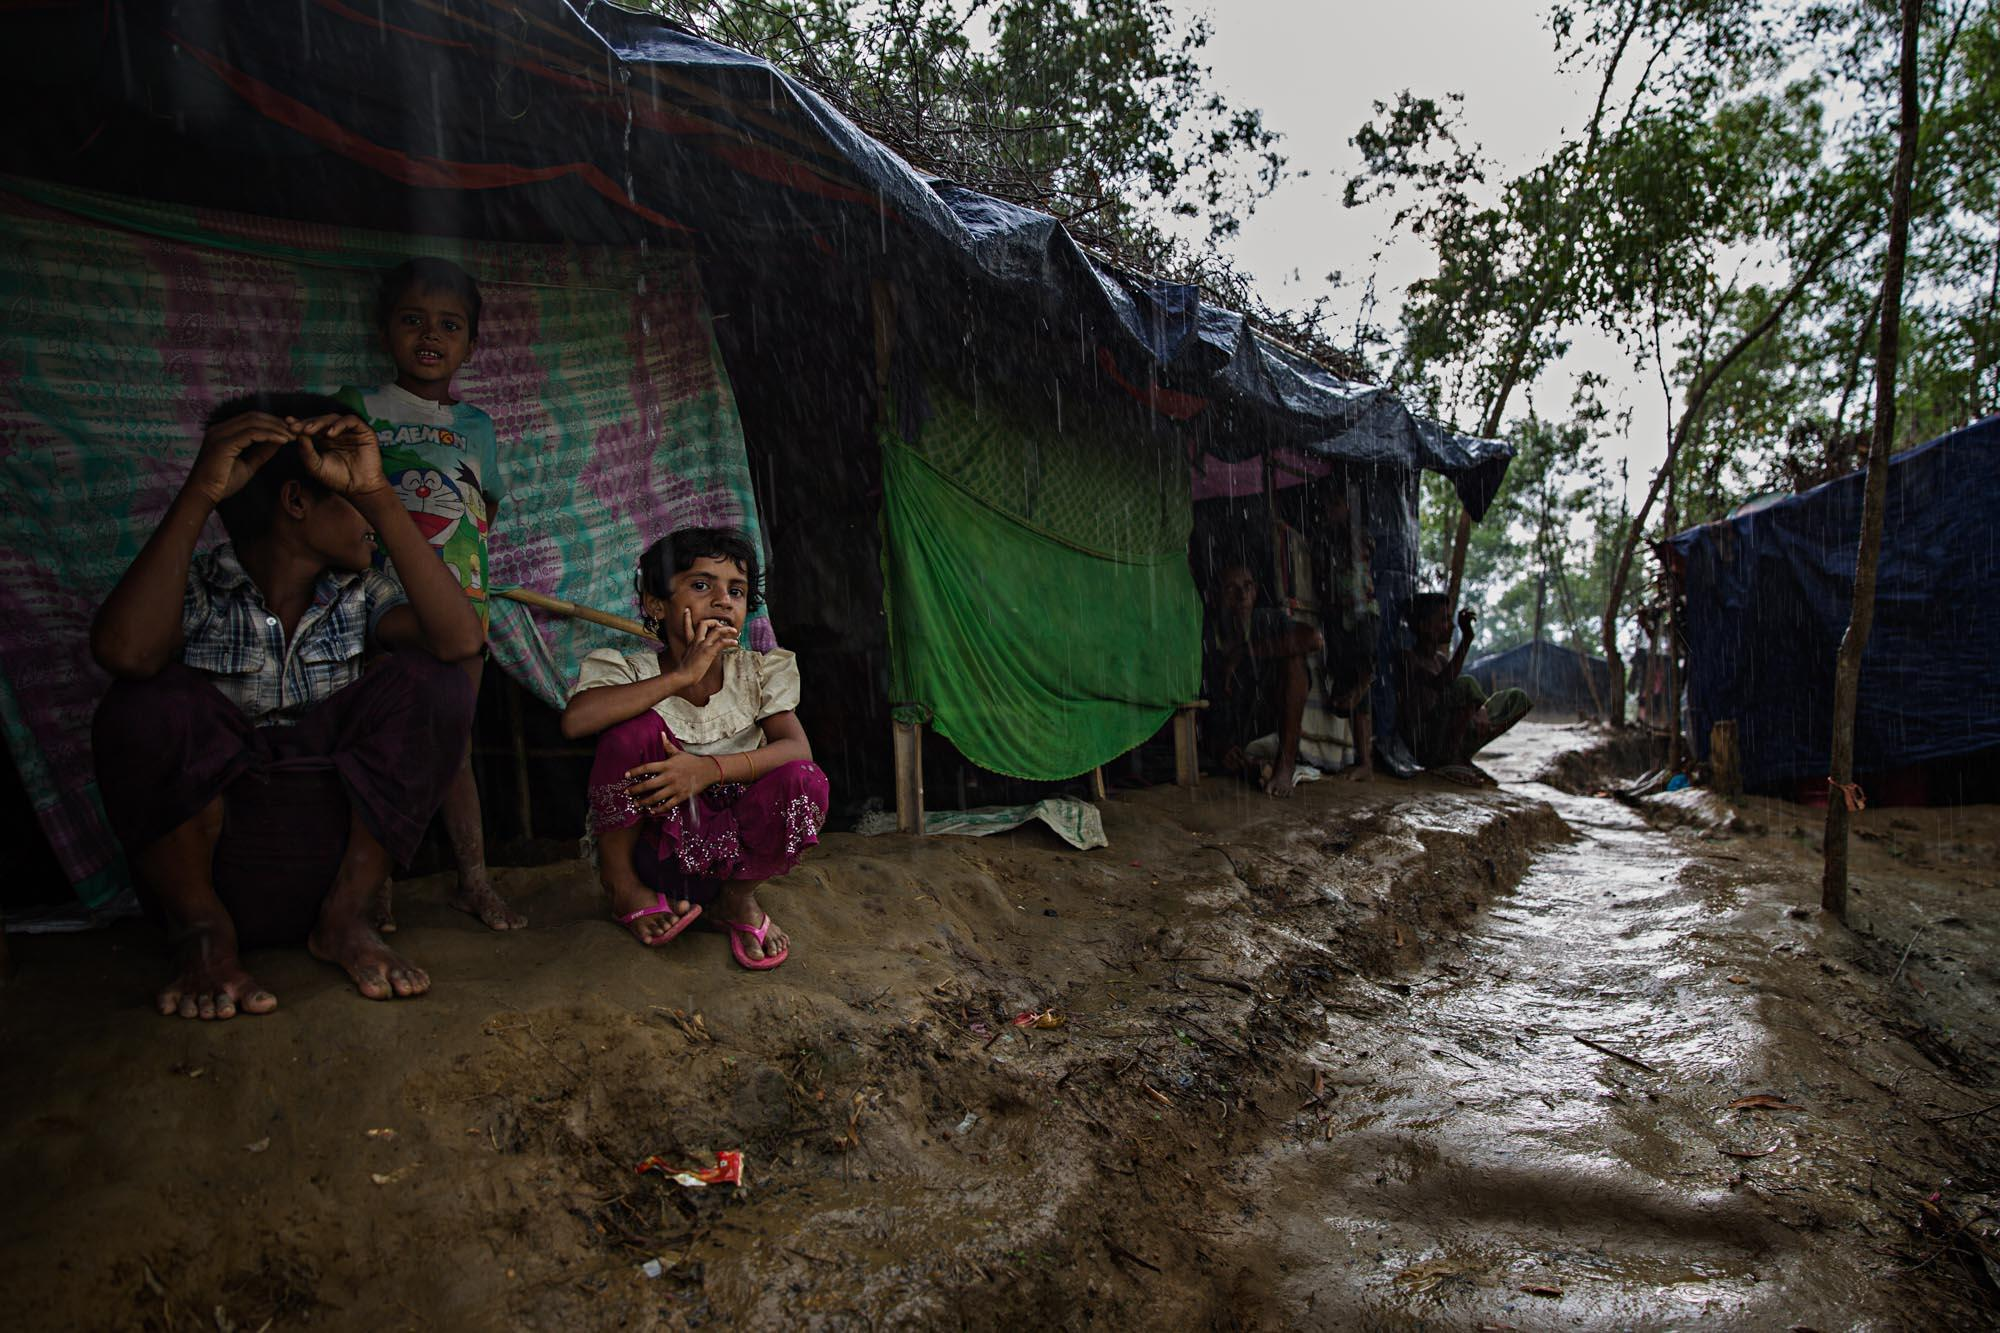 A young Rohingya girl waits out a monsoon rain in a camp outside of Cox's Bazar, Bangladesh. The heavy rains turned the hills into slippery, muddy slides and the valleys into ponds. Every inch of land had to be cleared quickly and the rainy season created slippery hills, lots of mud and poor sanitation.